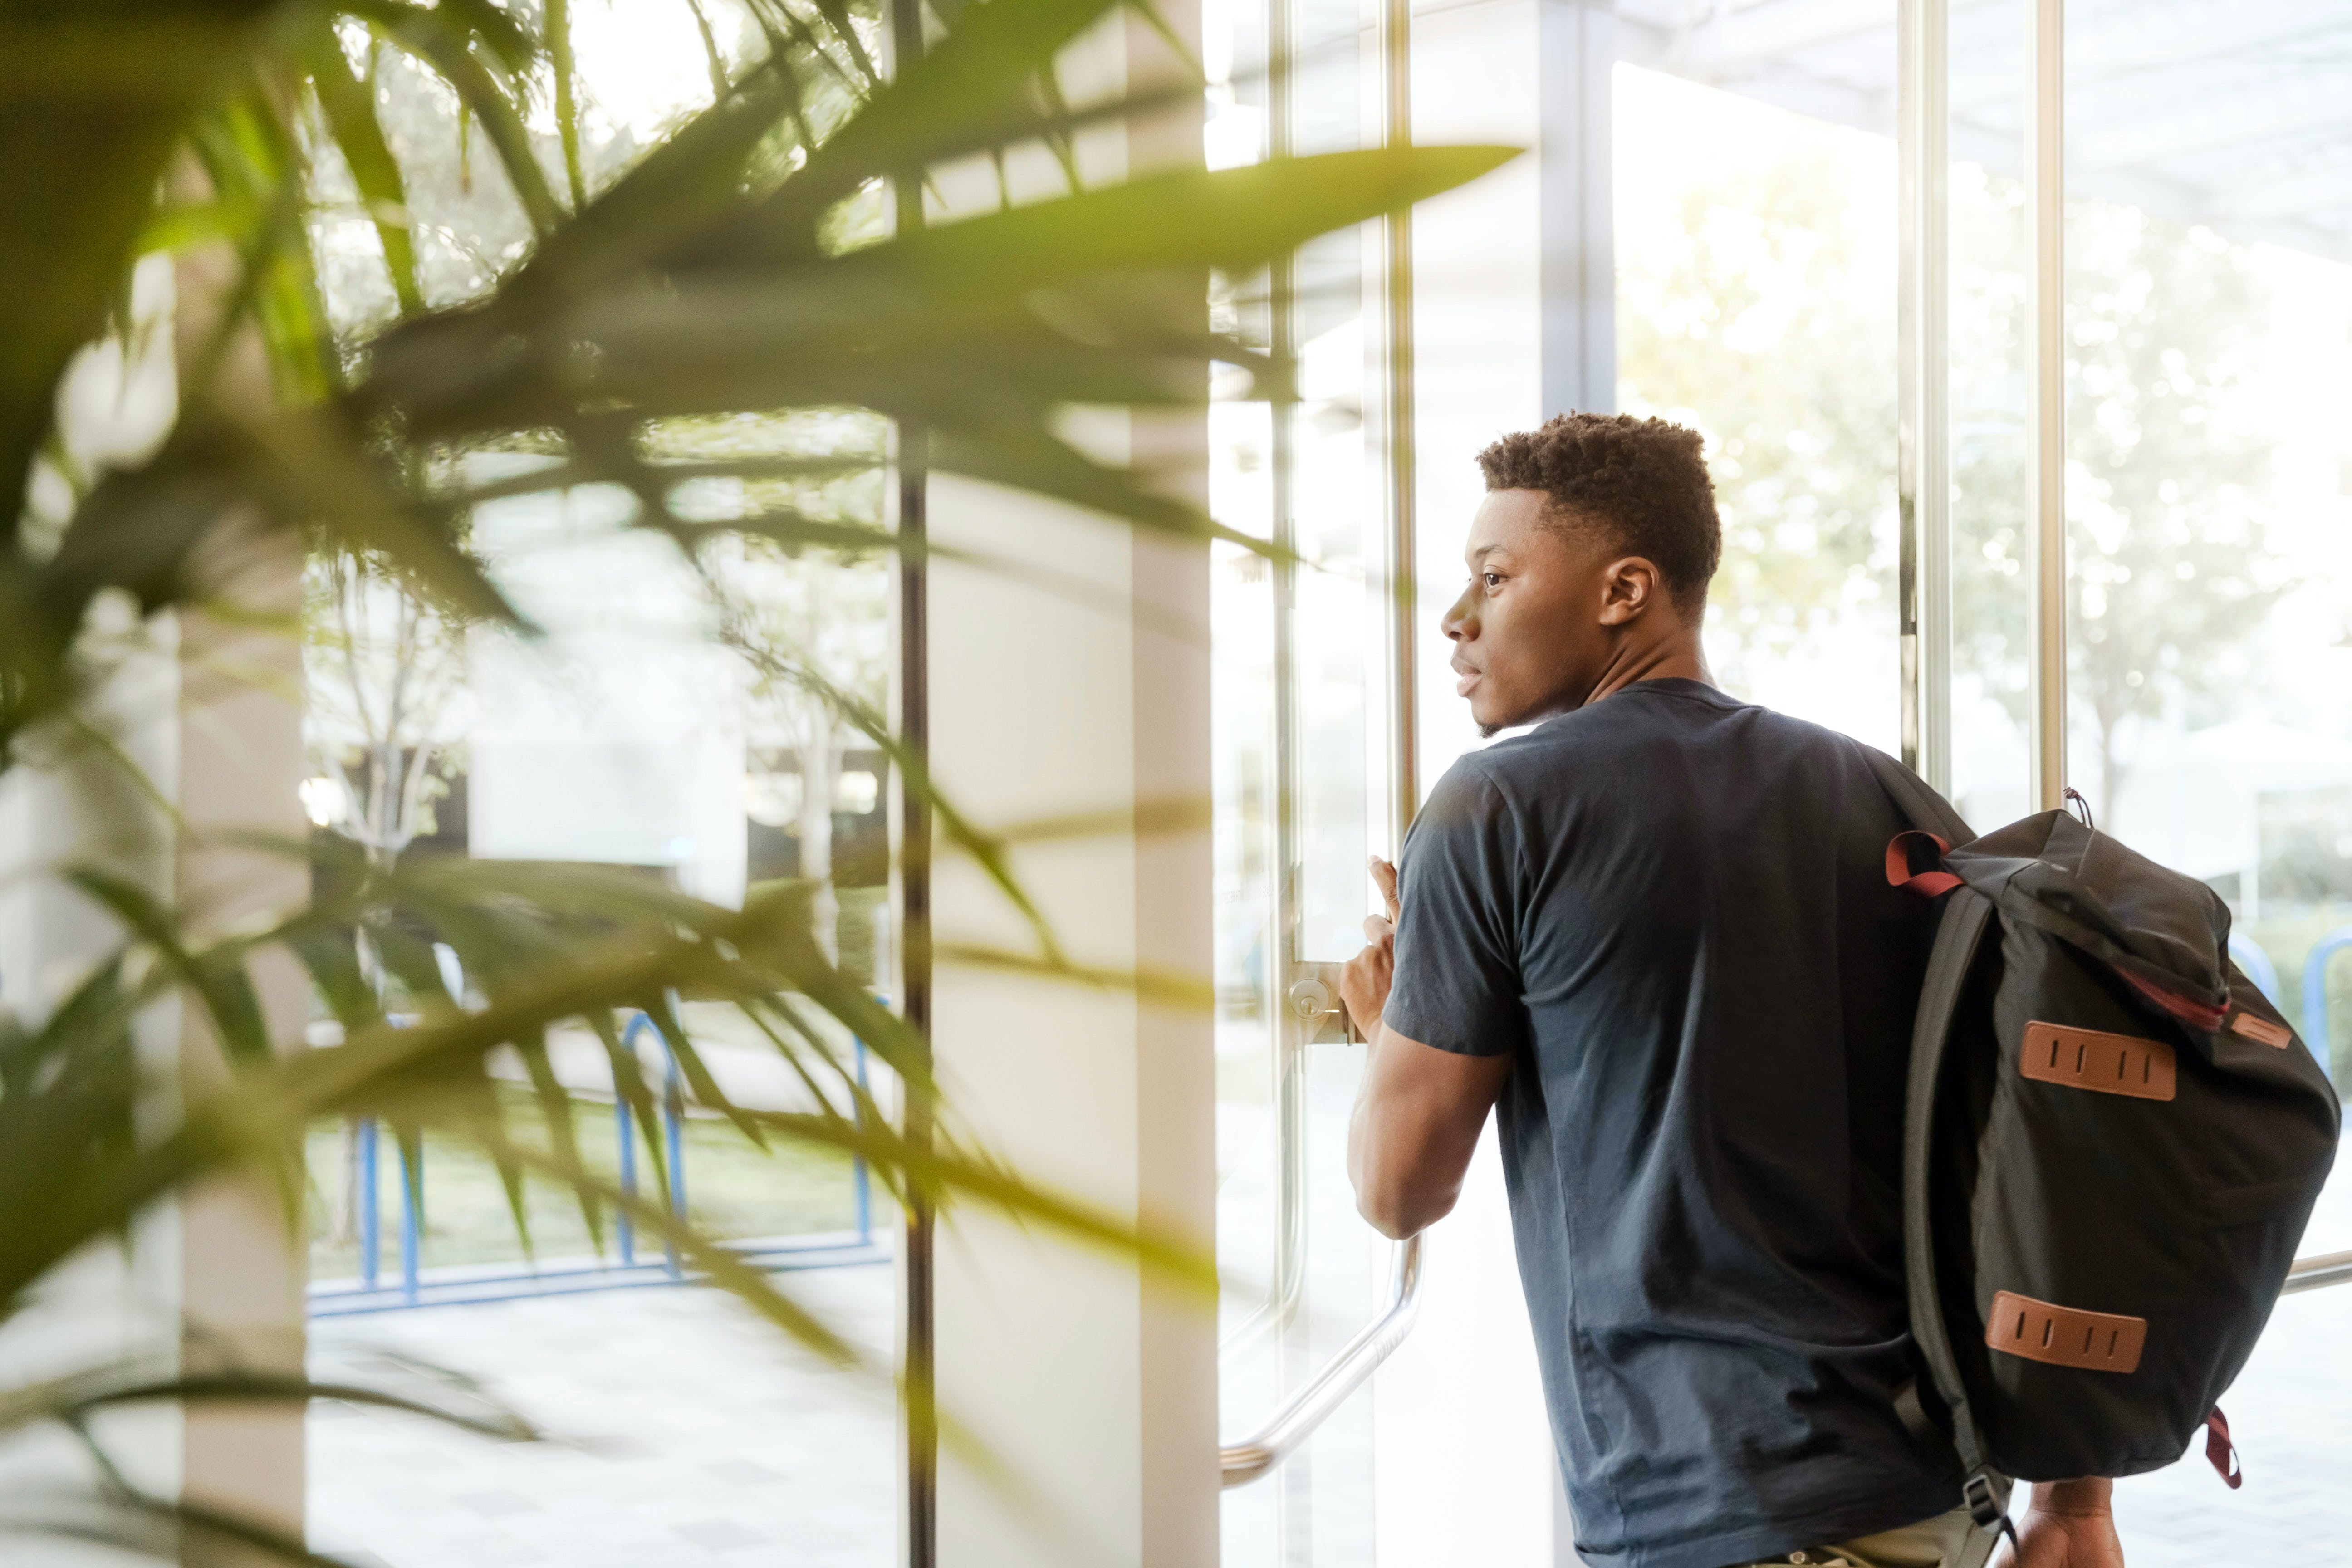 Man looking outside window carrying a backpack | Photo: Pexels